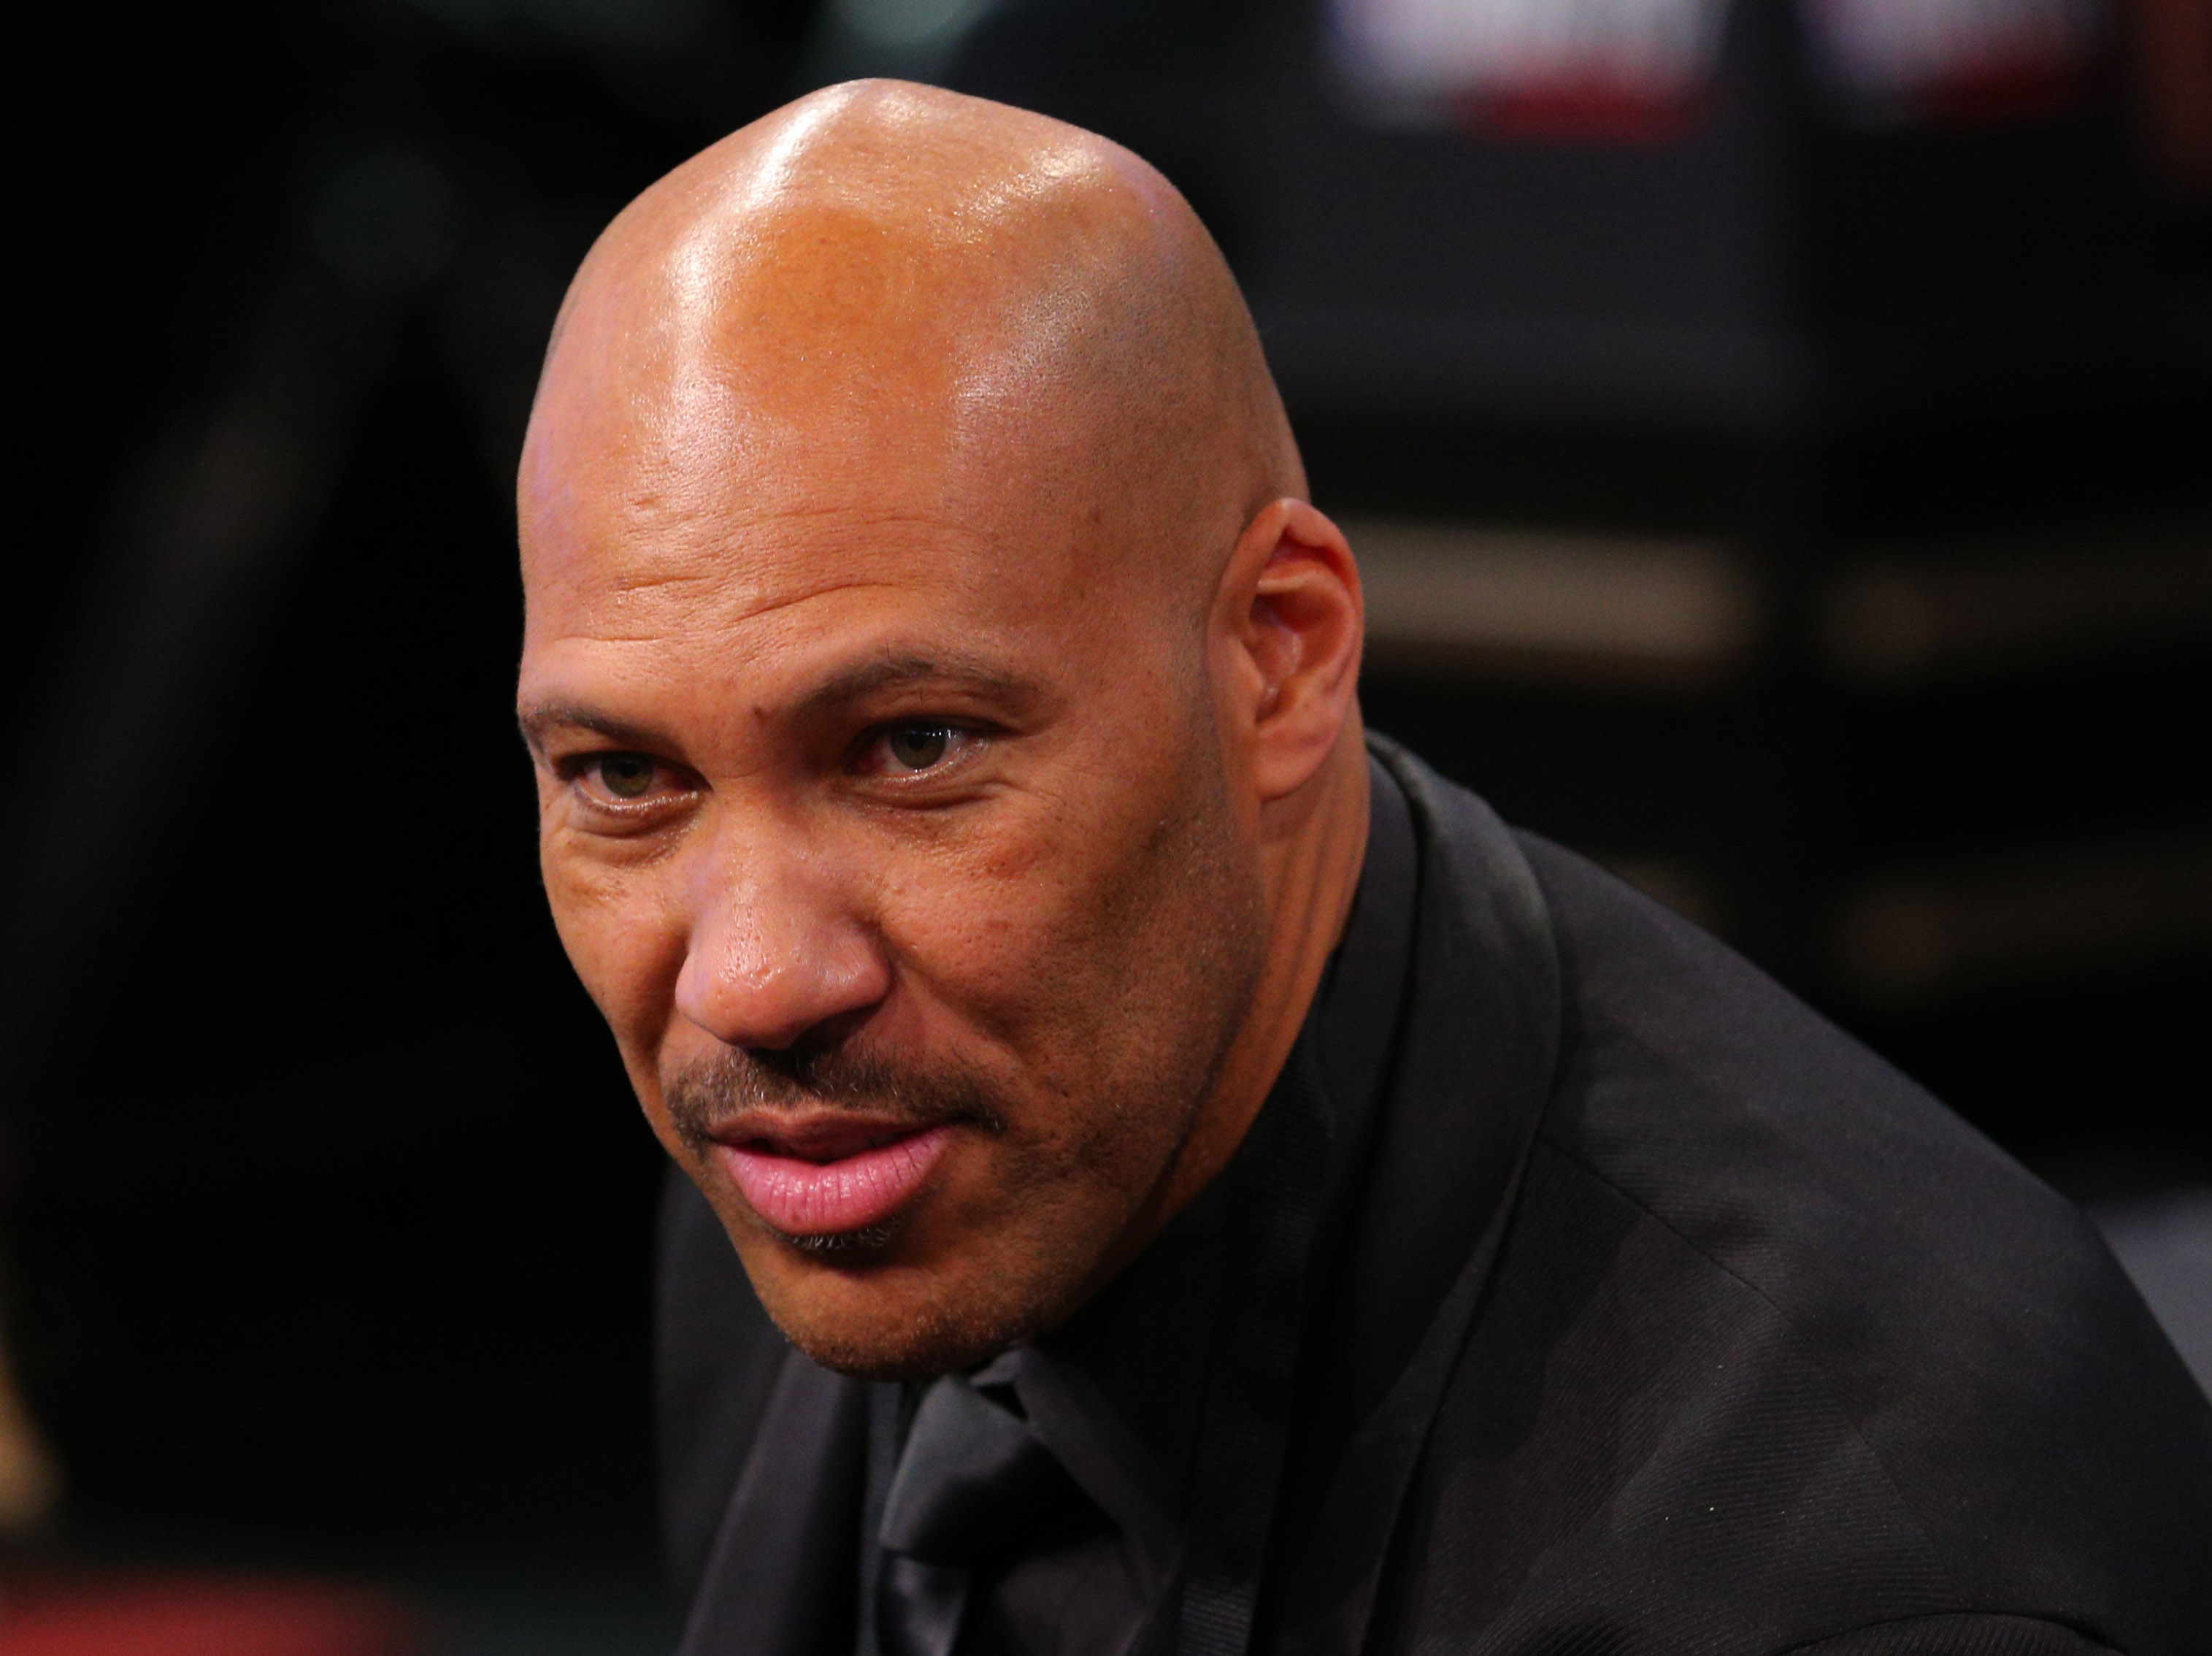 Top 10 Sports Stories of 2017: (2) The Big Baller